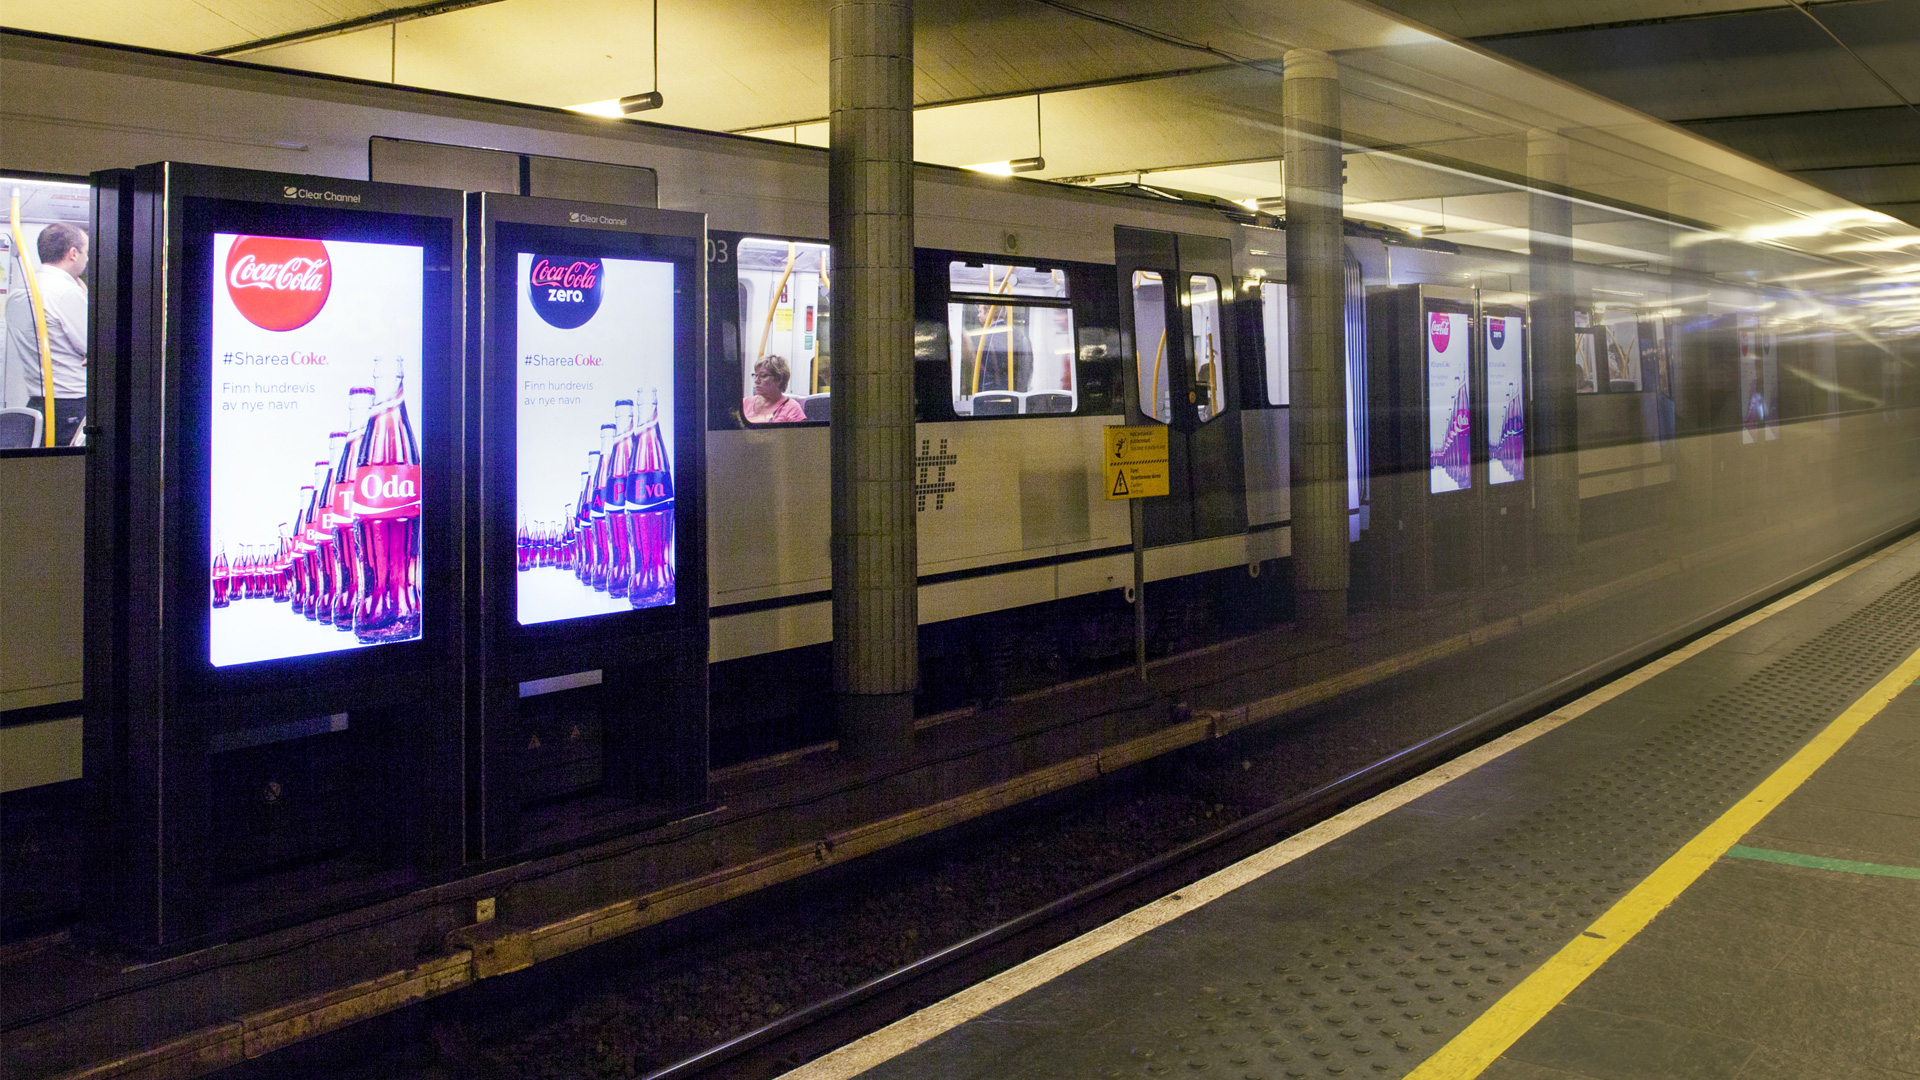 Clear Channel Norway Metro Matrox Maevex H264 Digital Signage